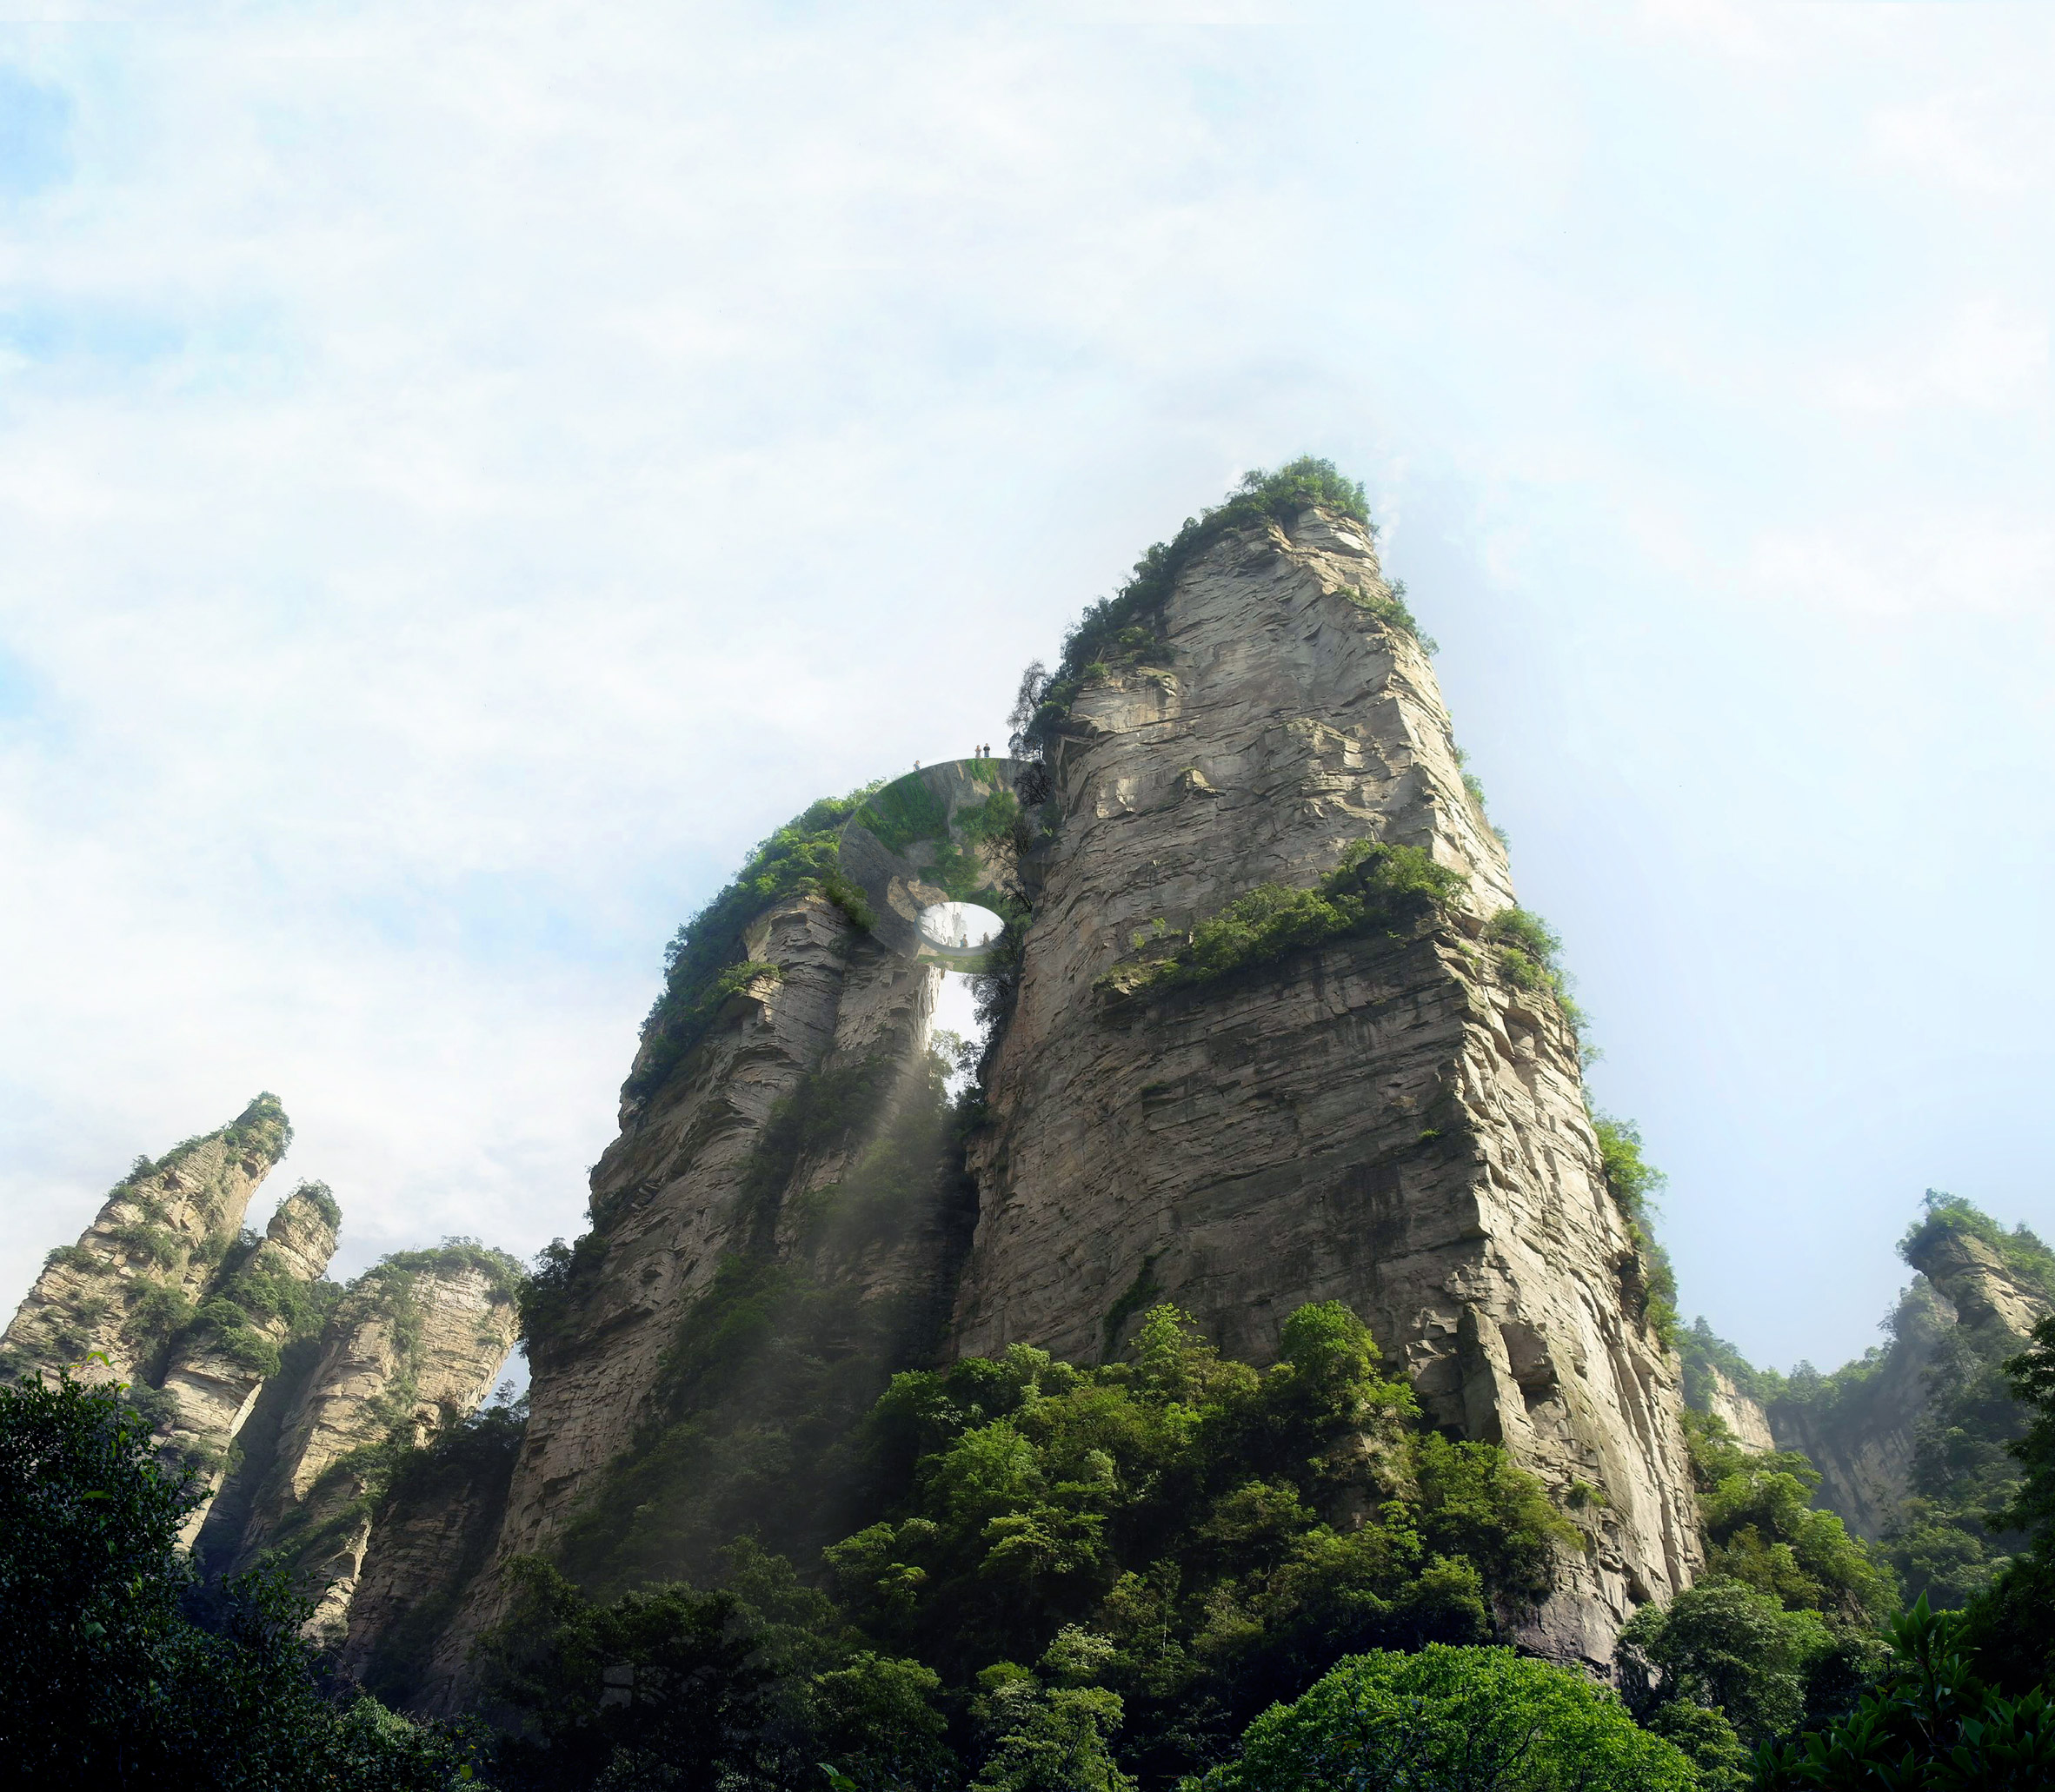 Mirrored and transparent viewpoints proposed for China's Zhangjiajie forest